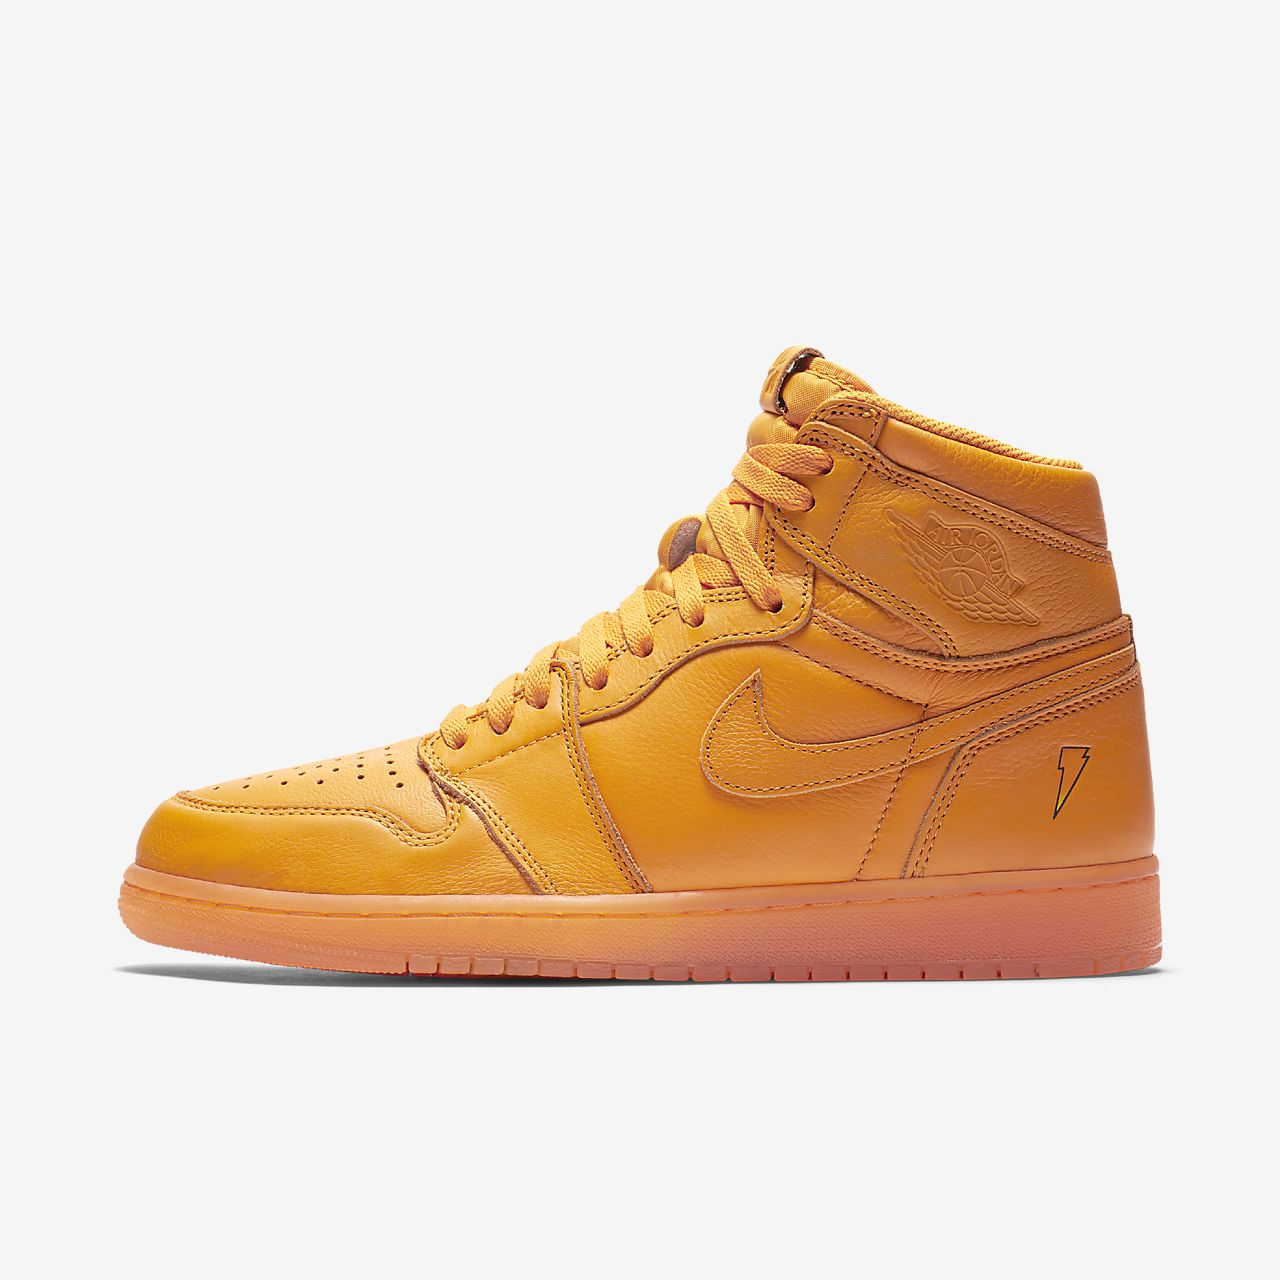 cbe454e8e6159d Air Jordan 1 Retro High OG  Orange  Men s Shoe. Nike.com ZA